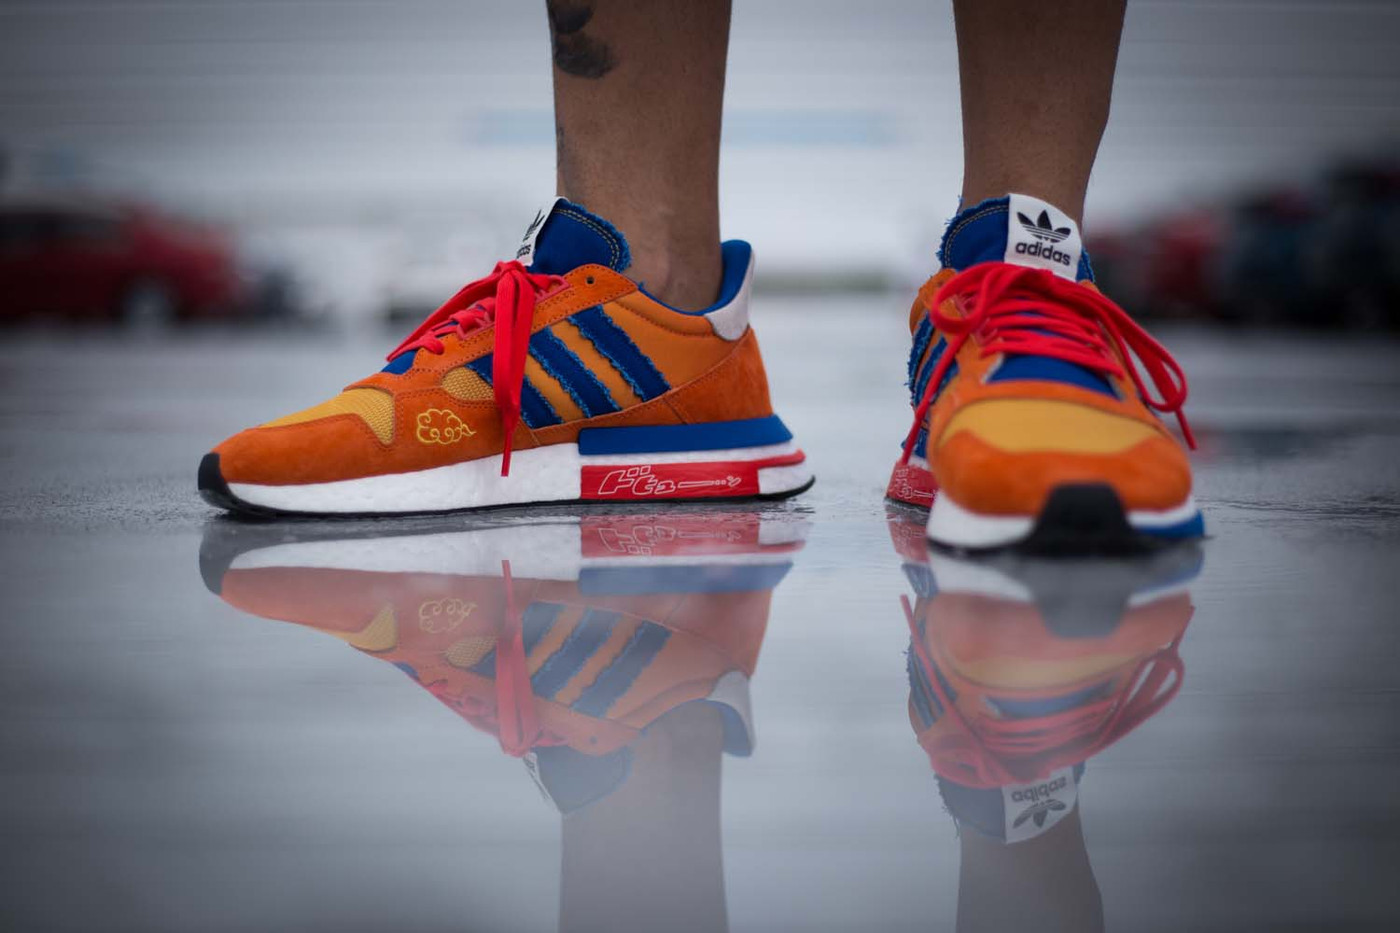 Are You Waiting For The Dragon Ball Z x adidas ZX 500 RM Son